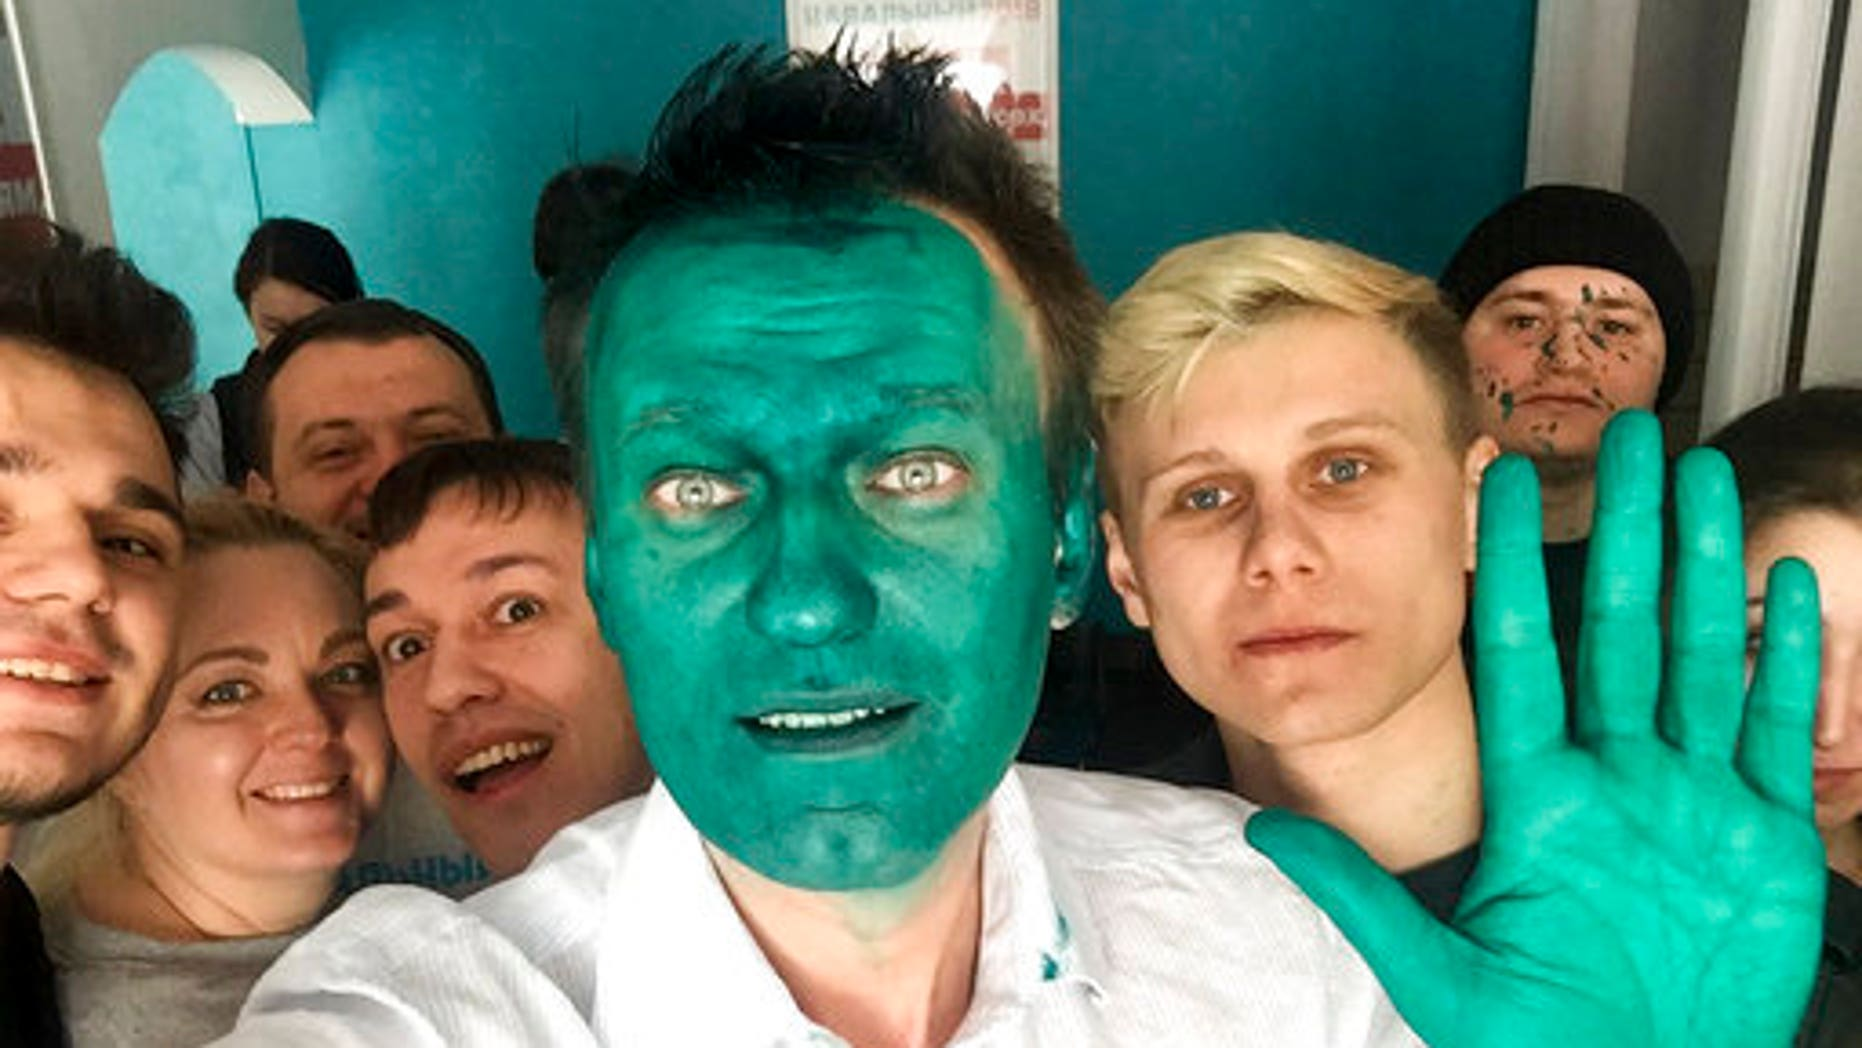 Russian opposition leader Alexei Navalny takes a selfie with supporters after he said an unknown attacker sprayed a bright green antiseptic on his face.